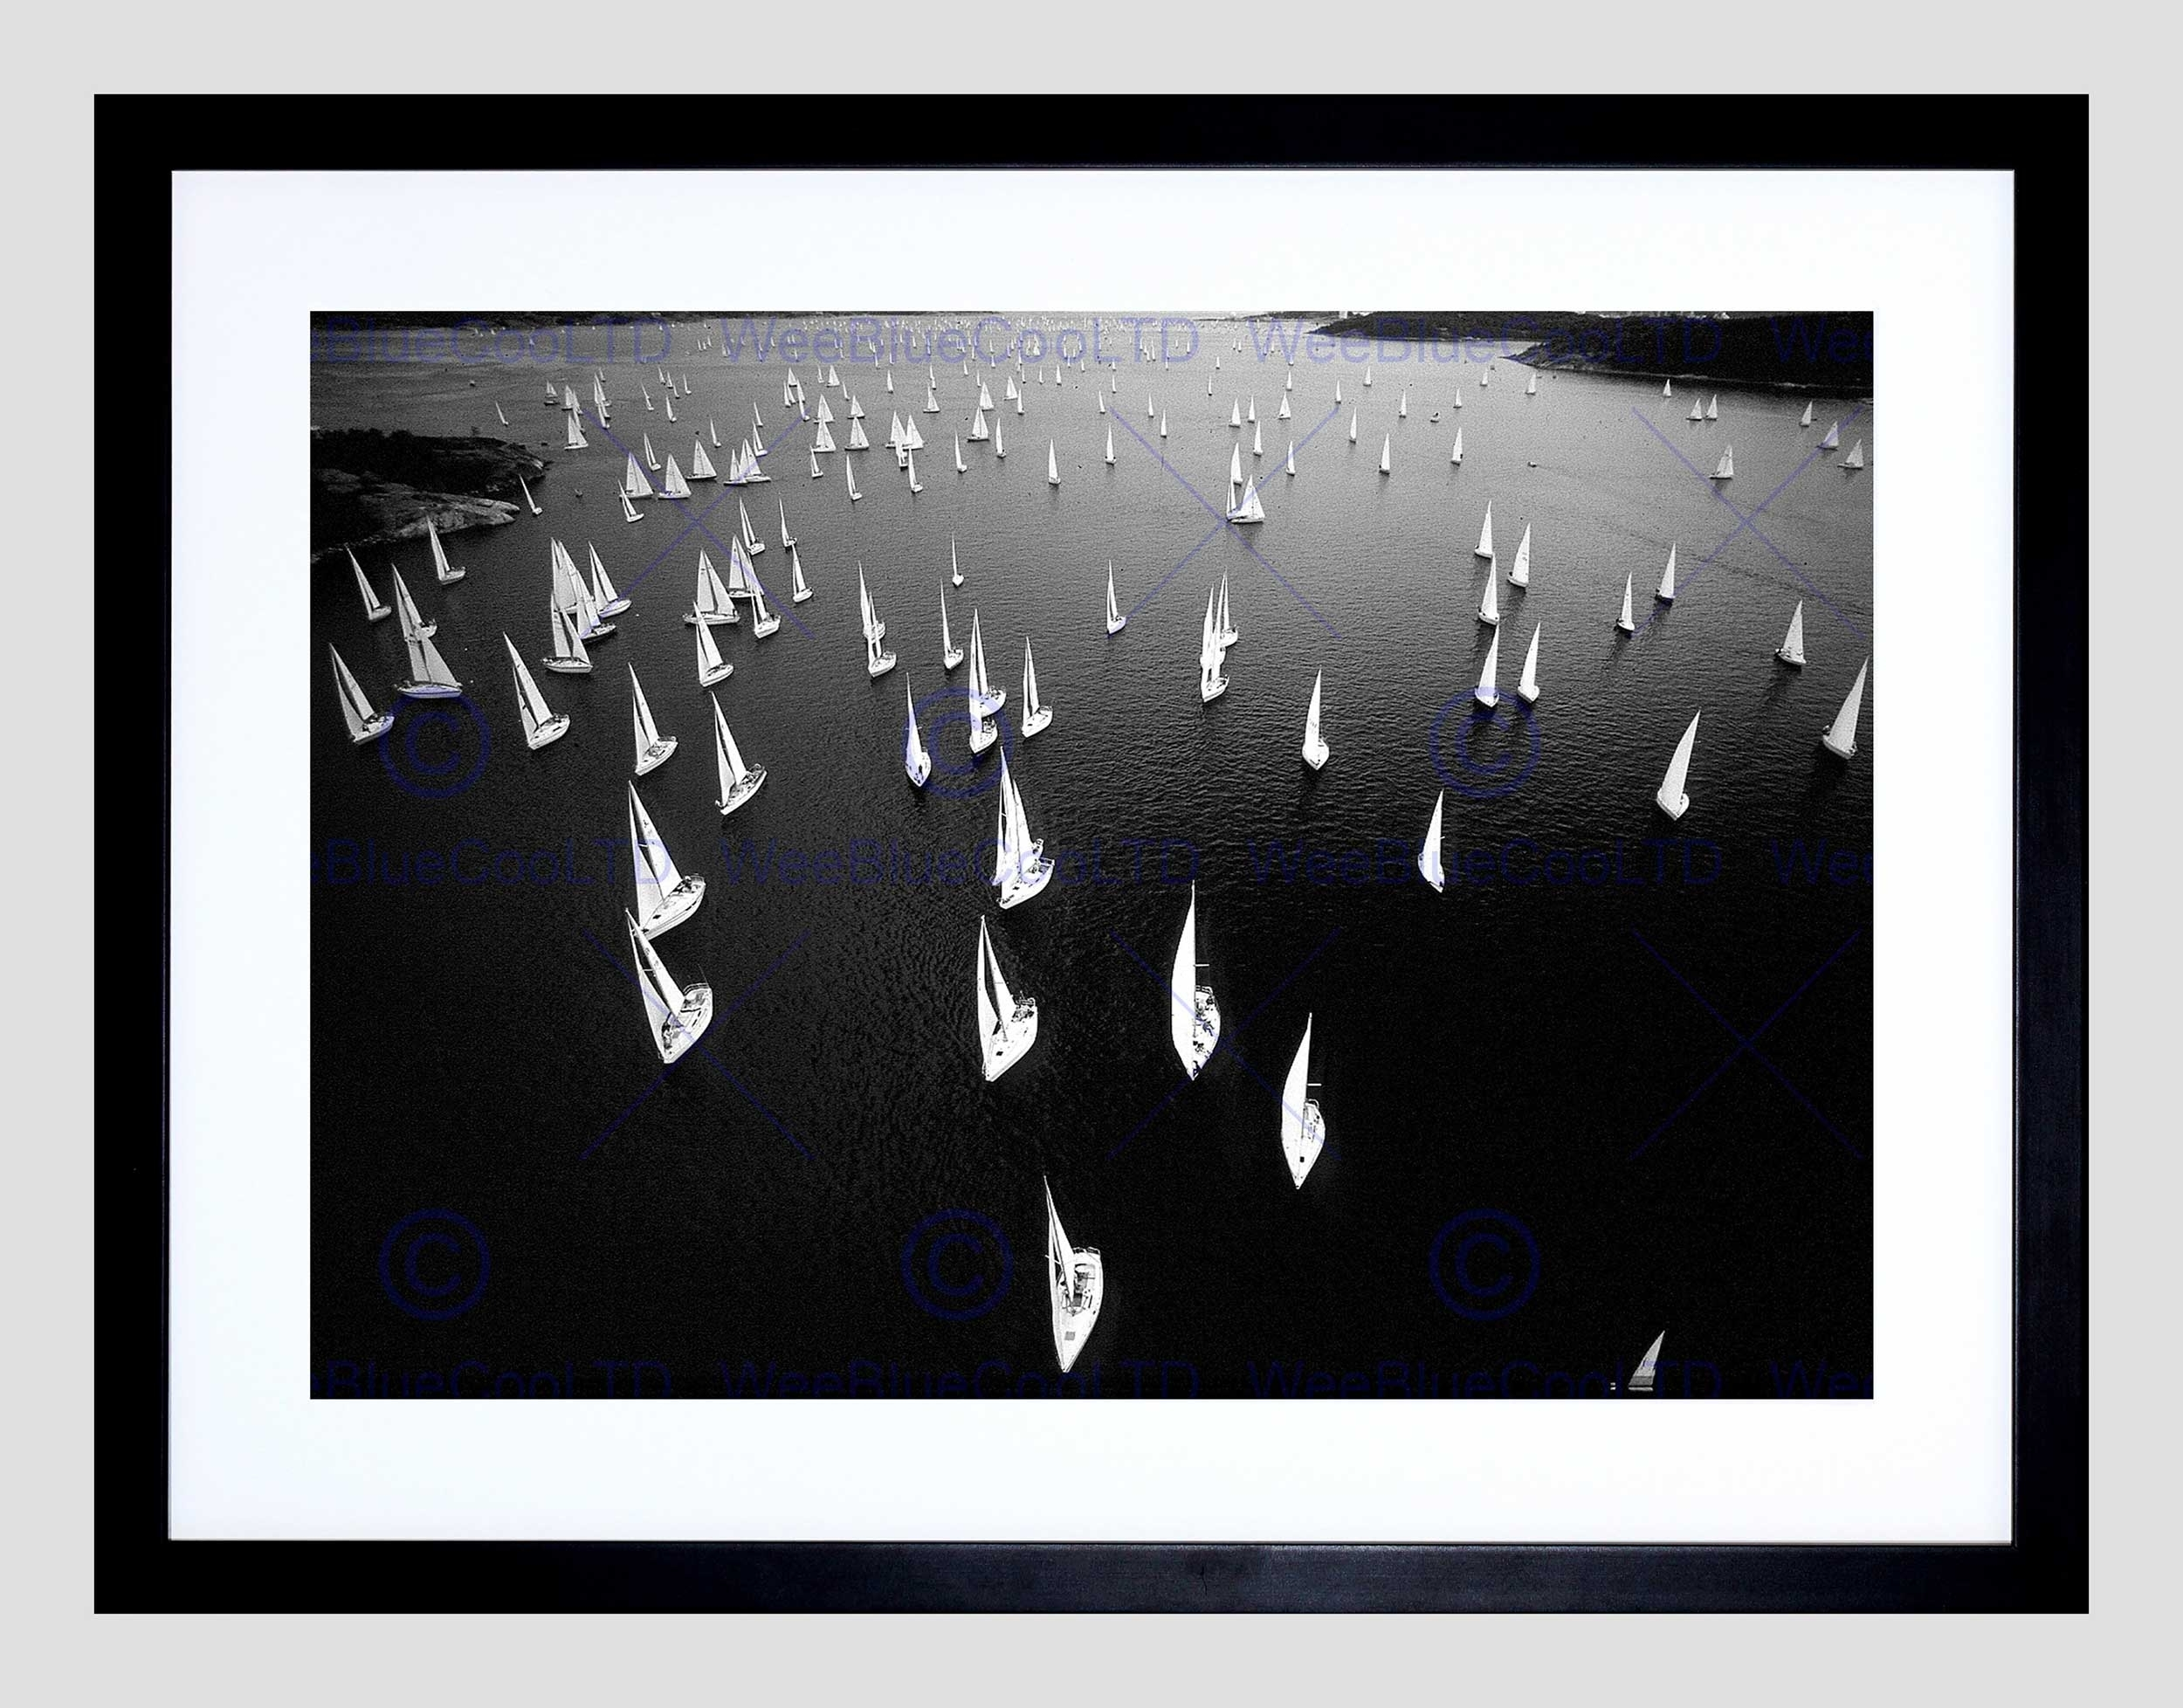 Black White Sail Boat Race Sea Black Frame Framed Art Print In Best And Newest Black Framed Art Prints (View 5 of 15)